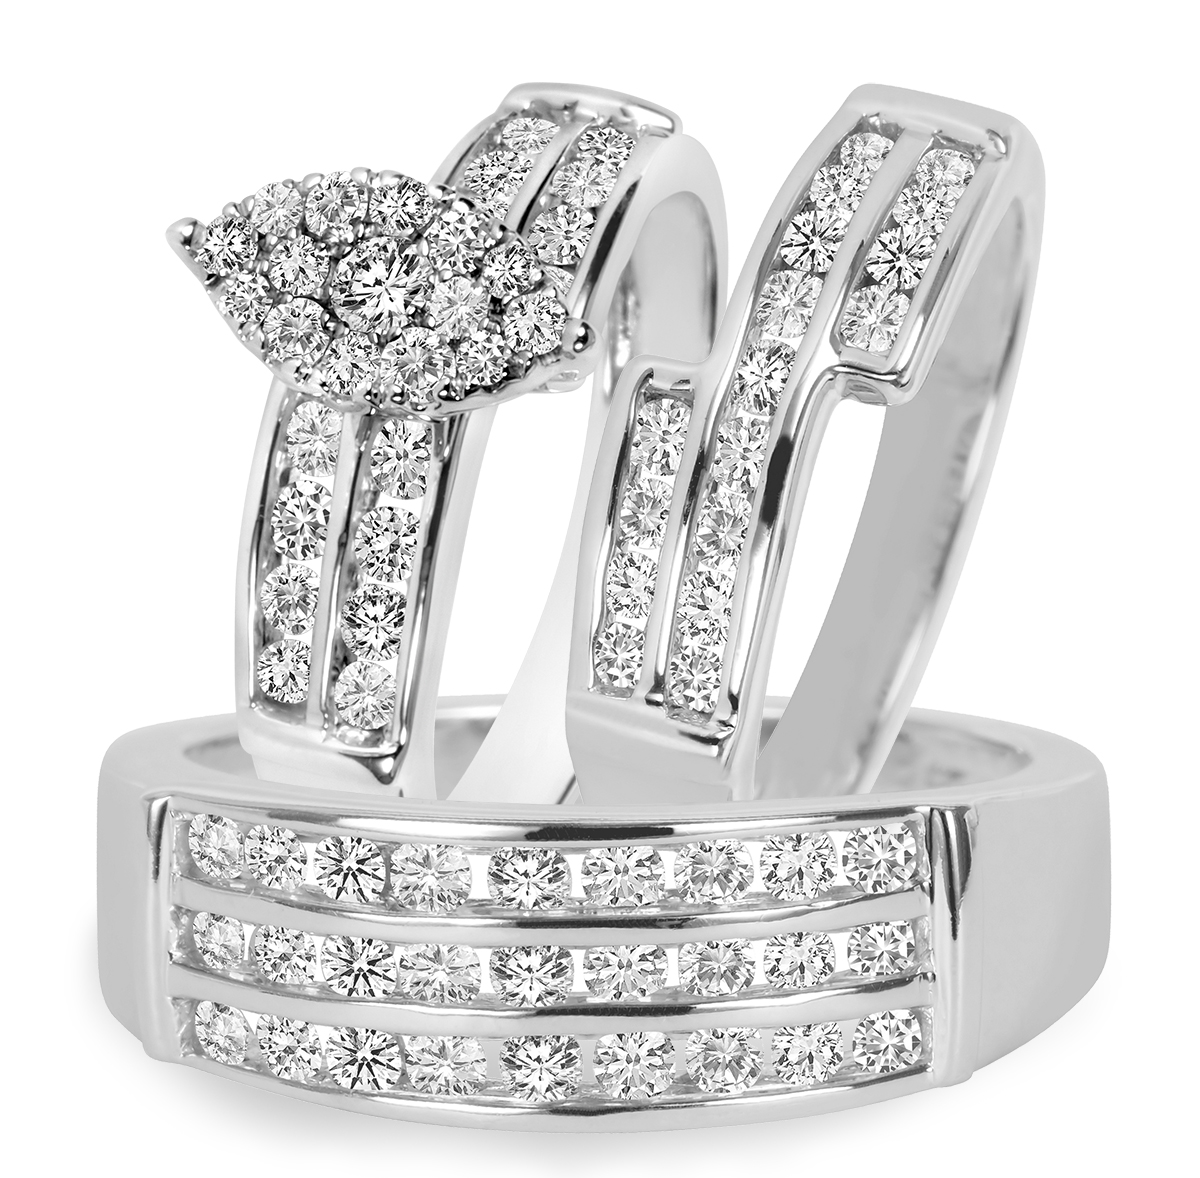 1 3/4 CT. T.W. Diamond Trio Matching Wedding Ring Set 10K White Gold